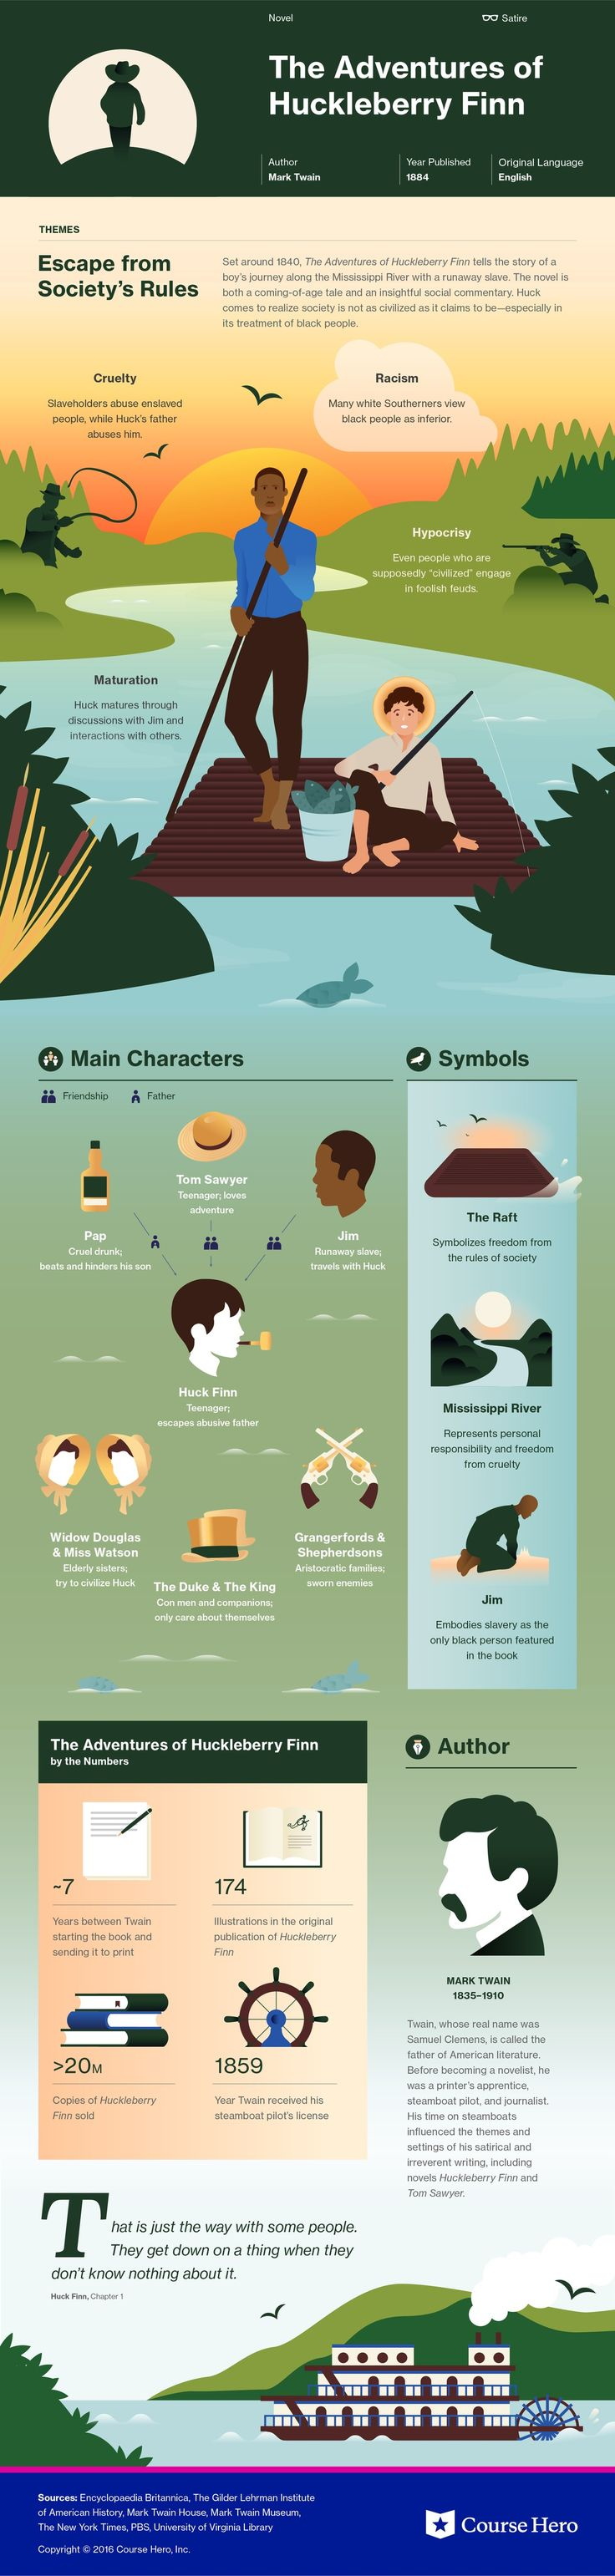 best ideas about huckleberry finn classic books the adventures of huckleberry finn infographic course hero